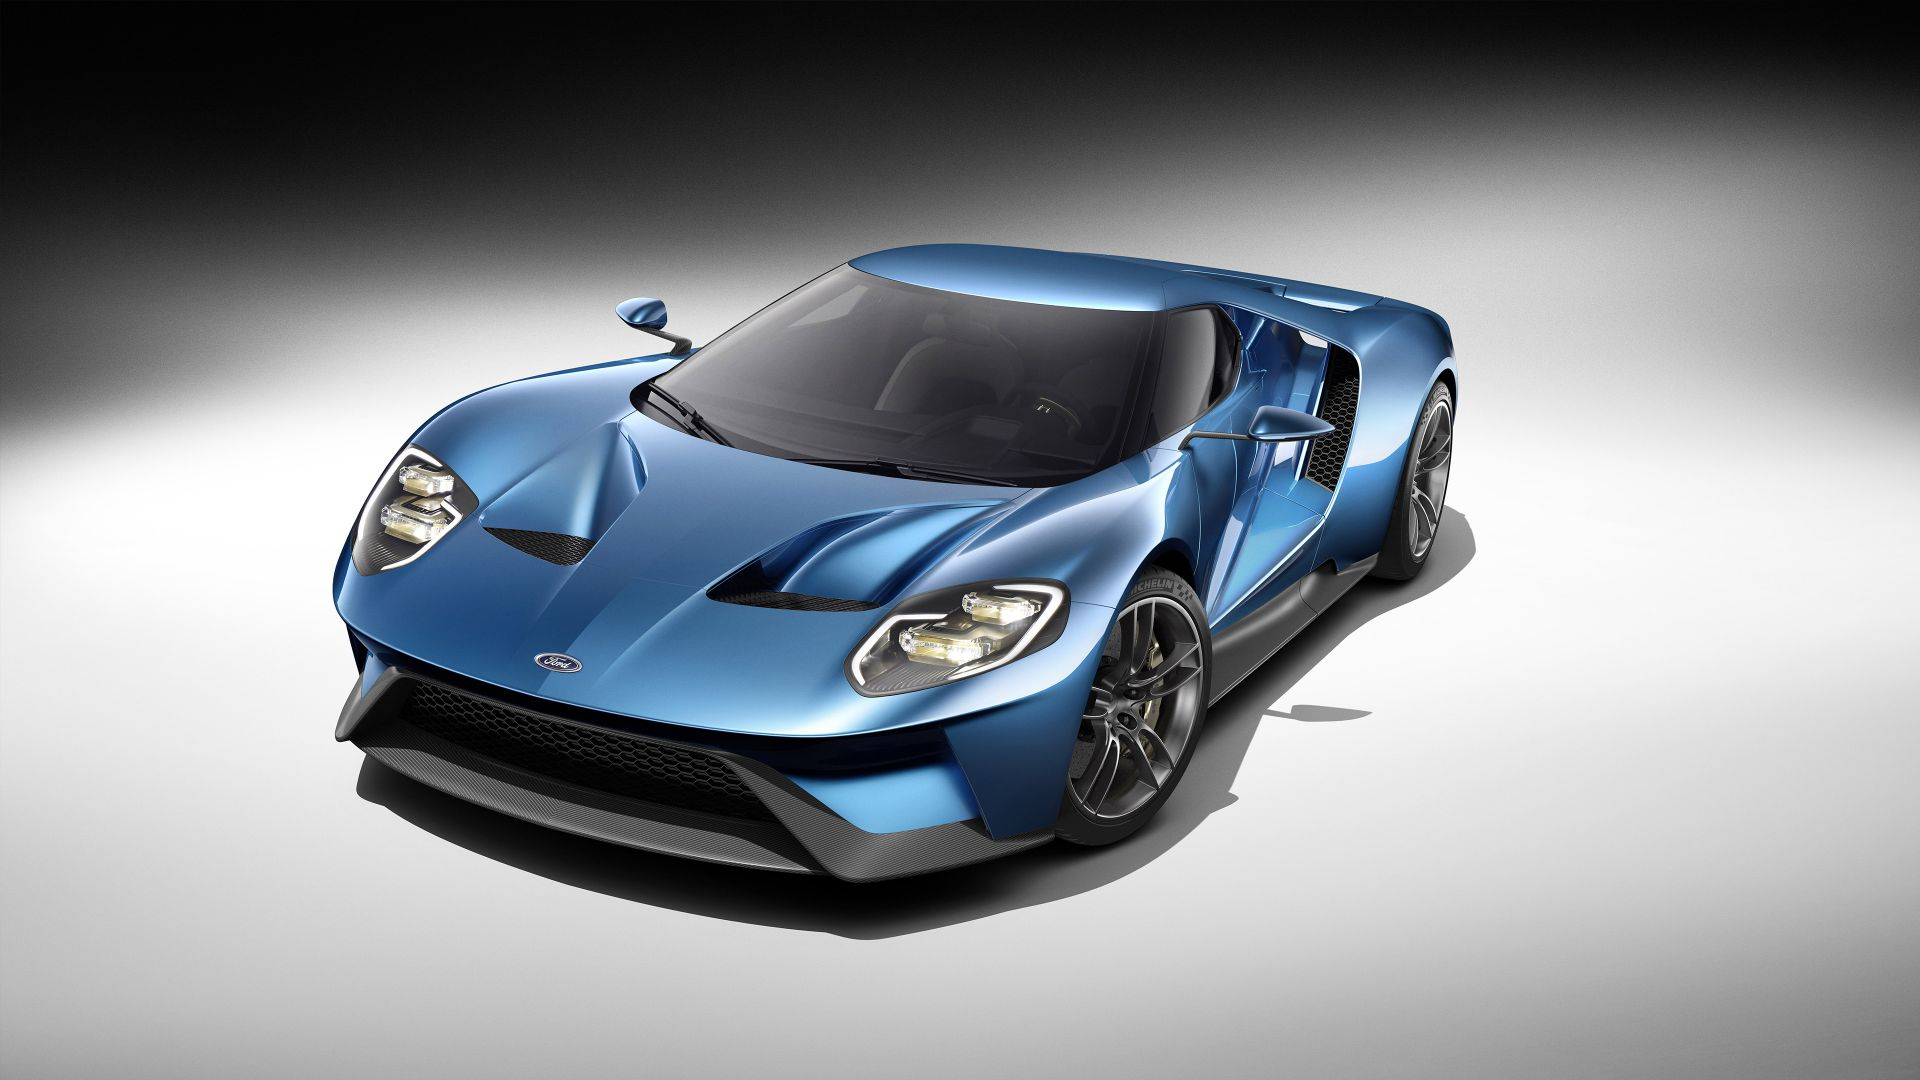 Ford GT, supercar, Ford, concept, 2015 car, Detroit, sports car, luxury cars, test drive (horizontal)